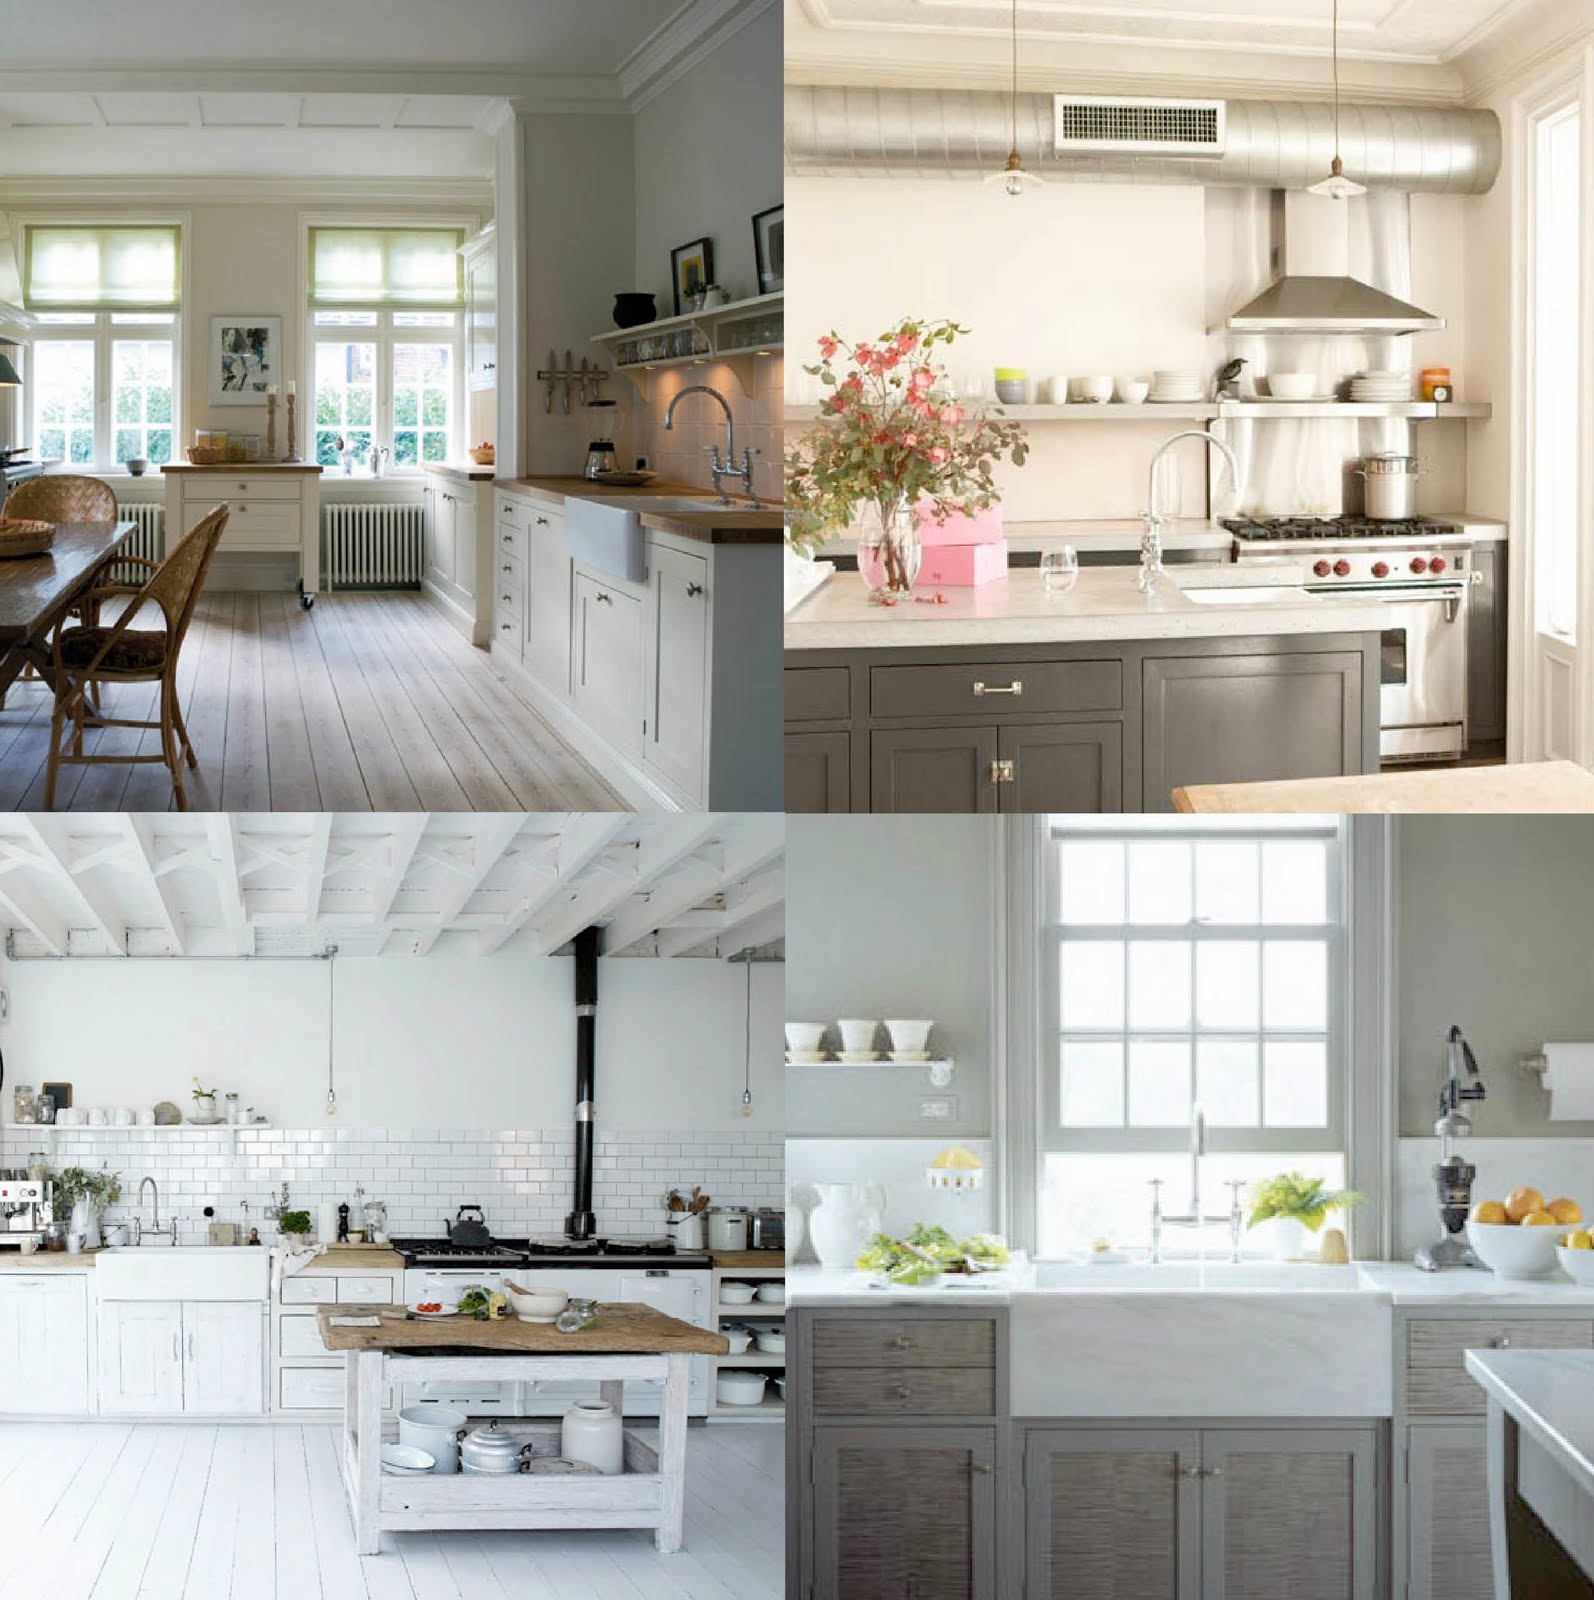 Kitchen Modern Rustic: Inspiring Home Décor: The City Sage